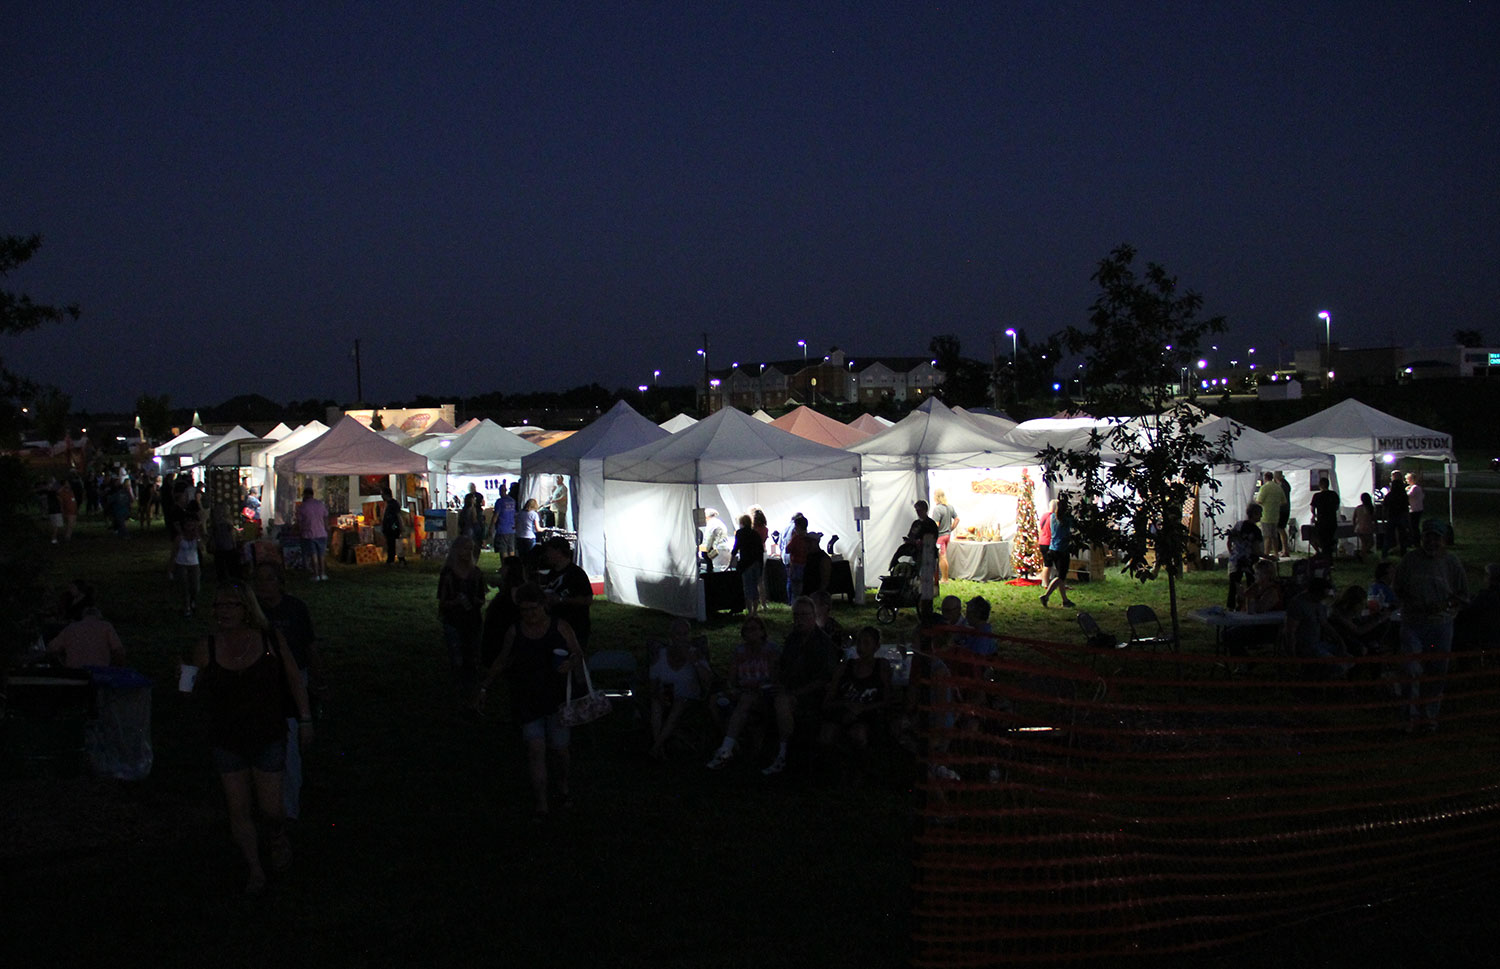 joplin-arts-fest-2018-night.jpg